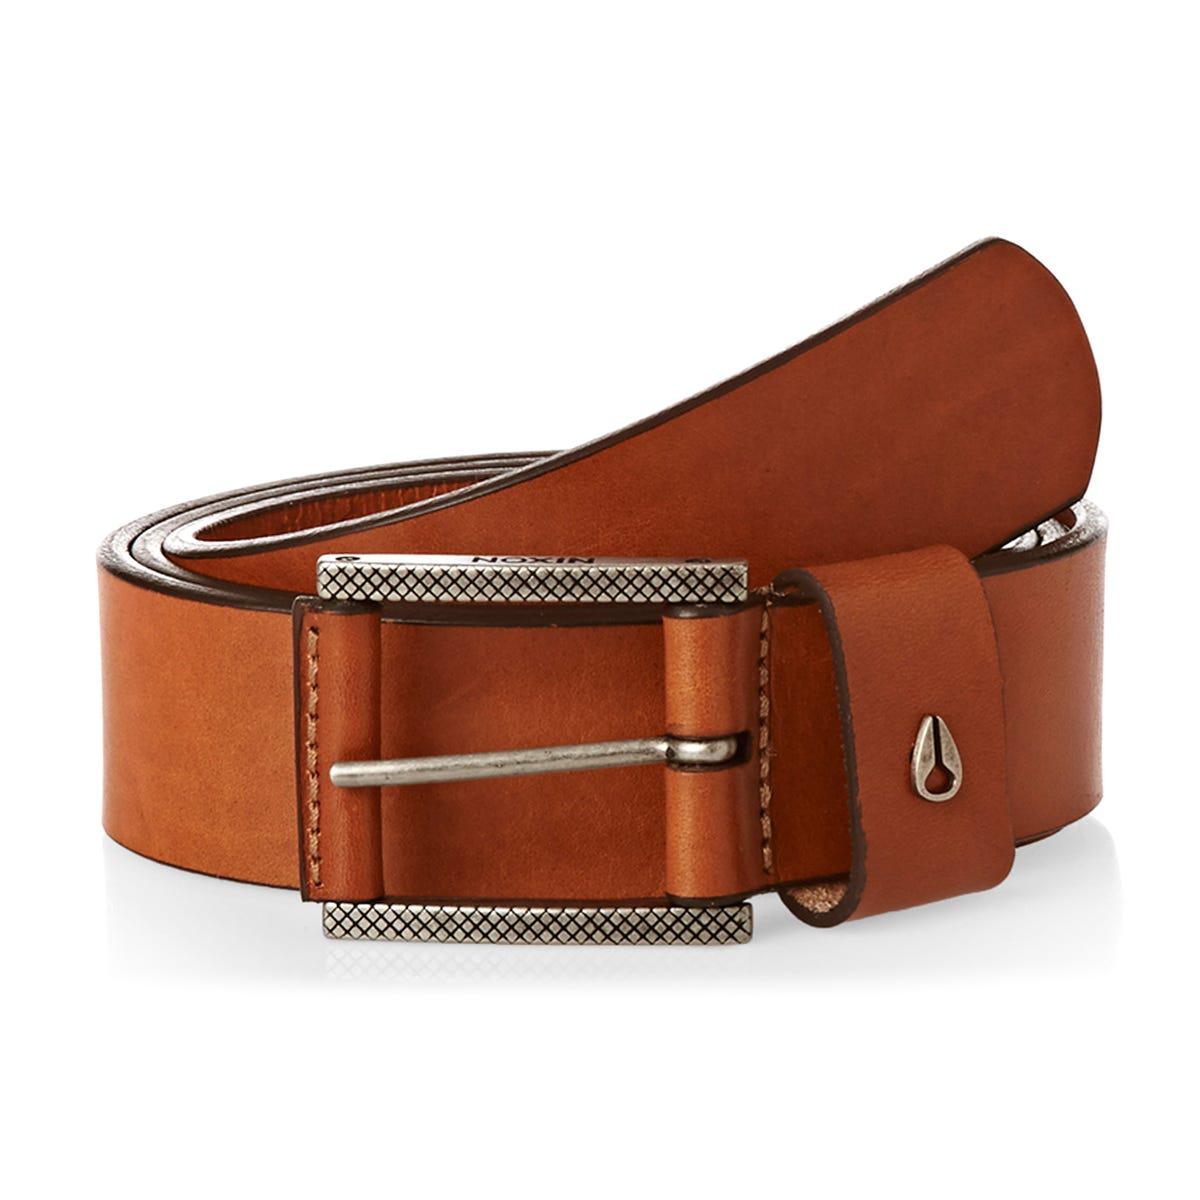 Americana Belt II Saddle Large NIXON